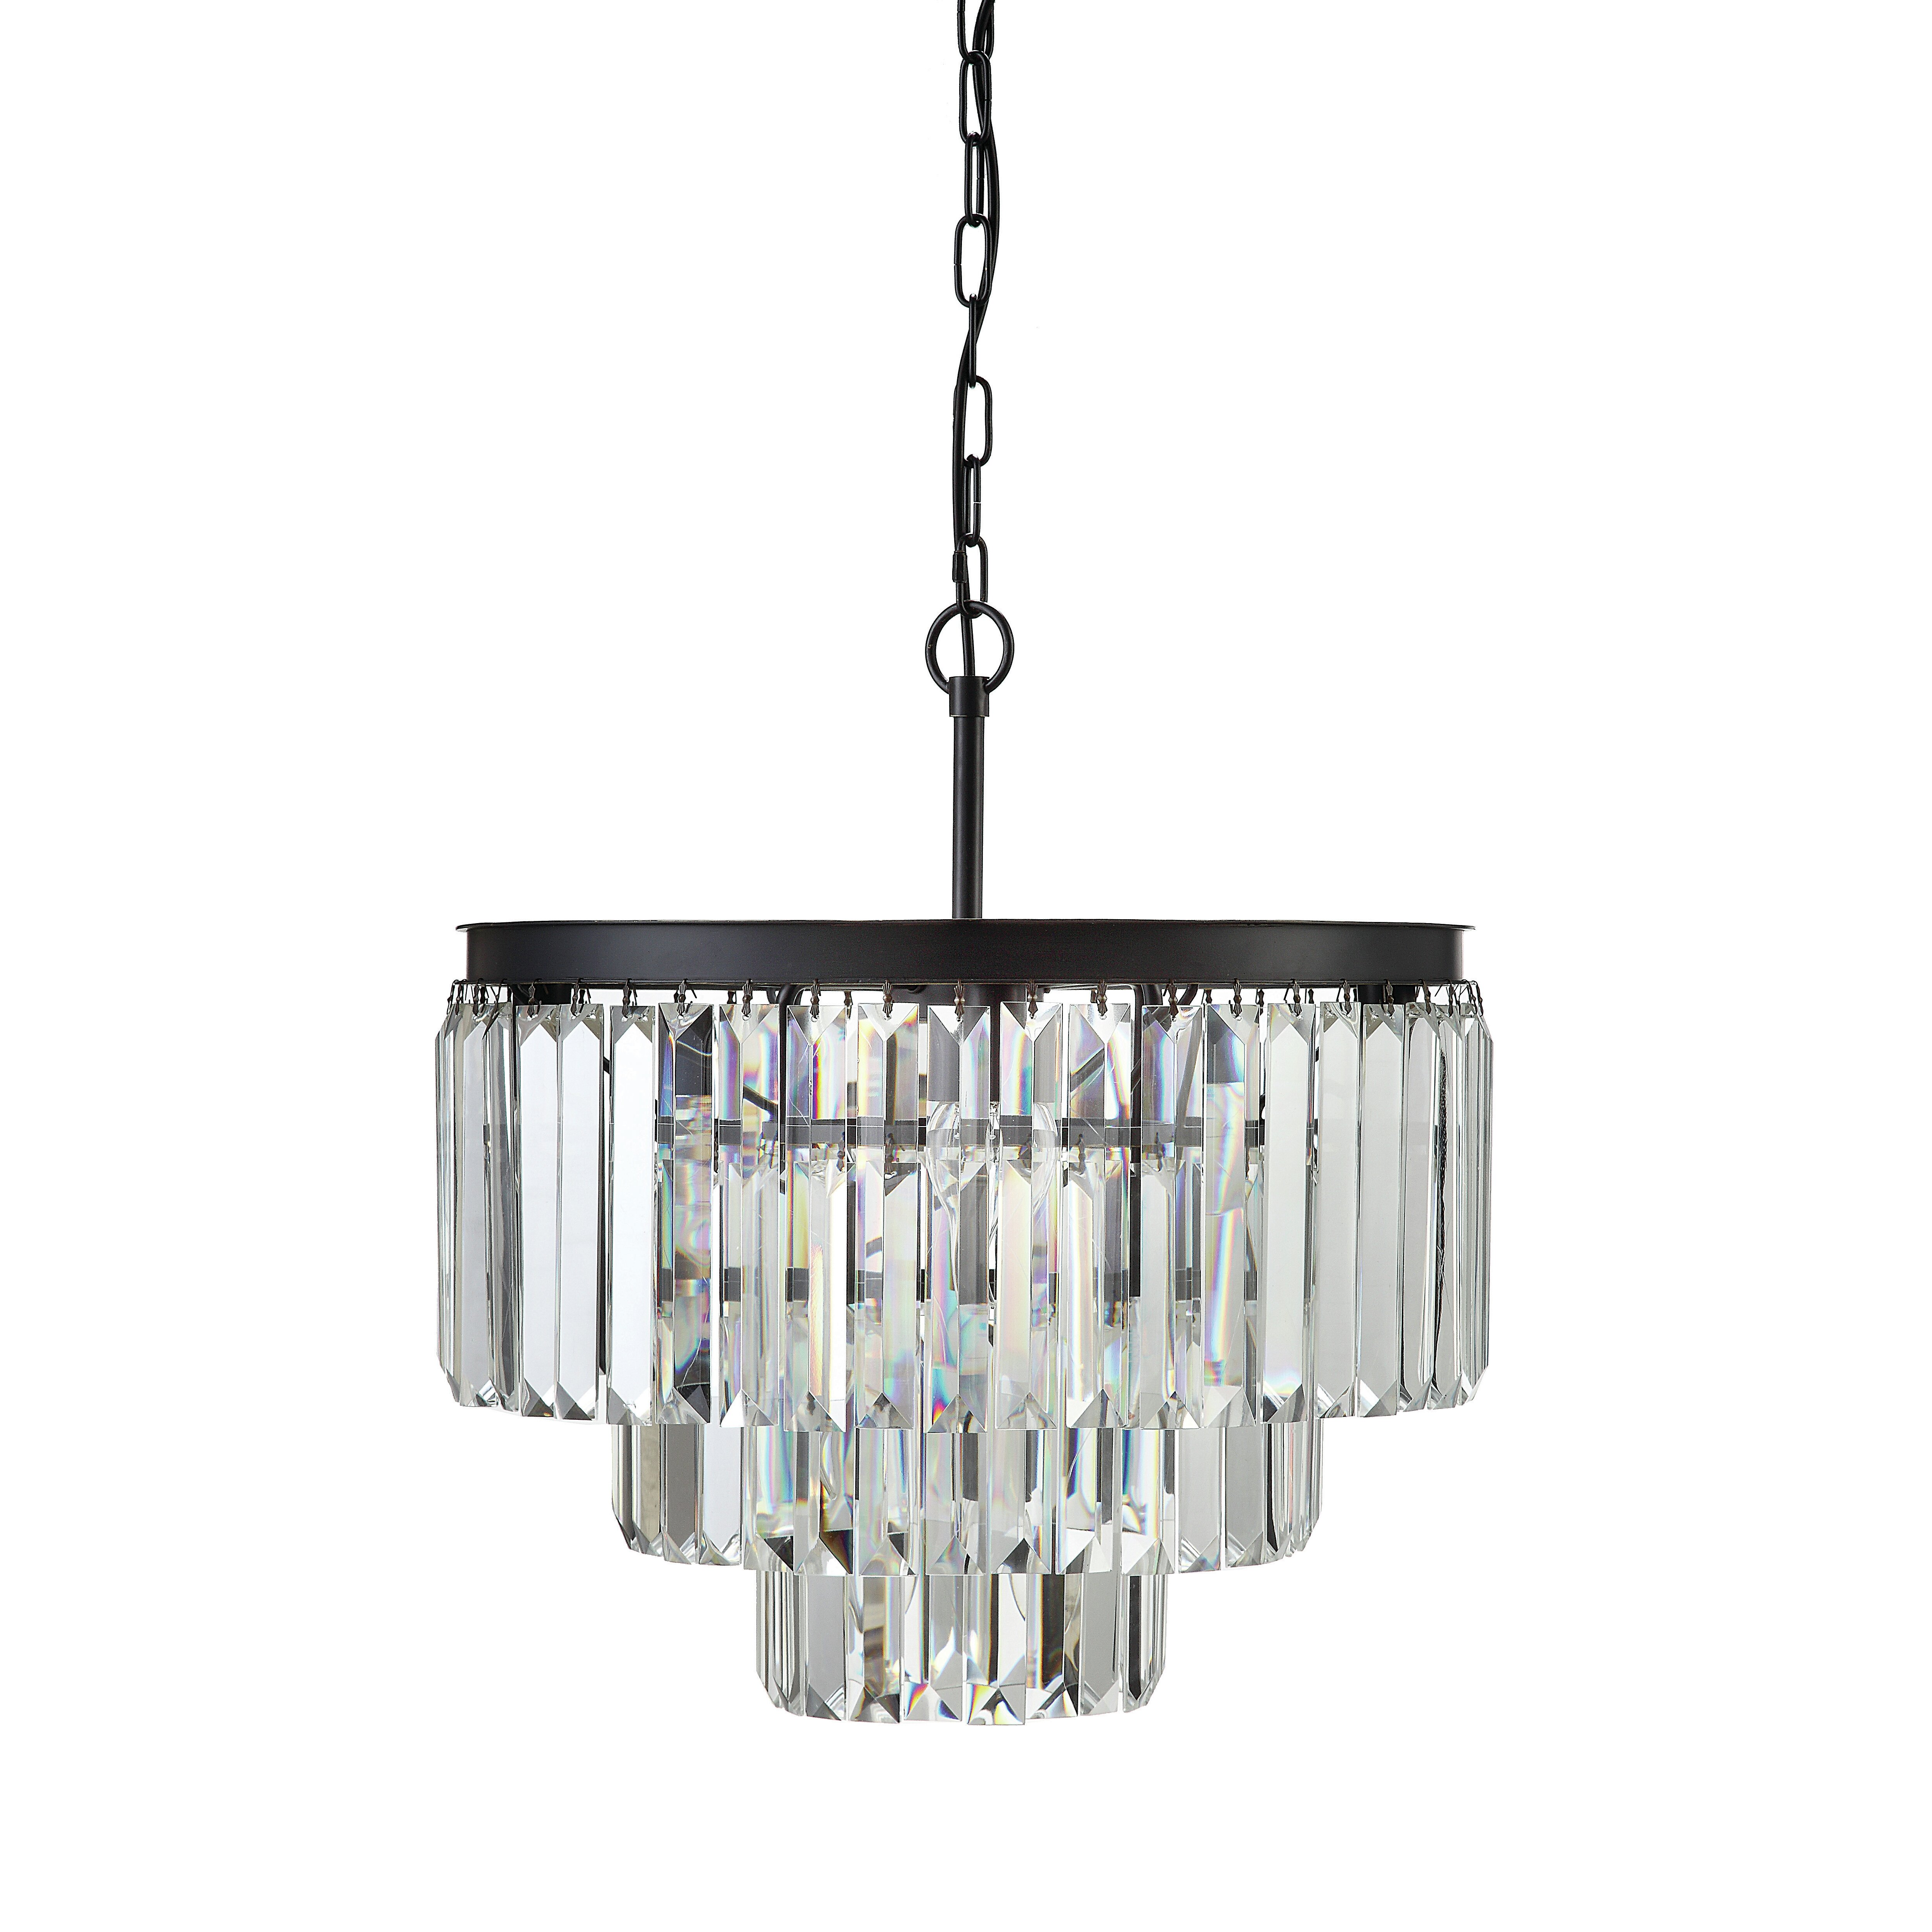 Creative Co Op Uptown Iron Frame with Crystals 9 Light